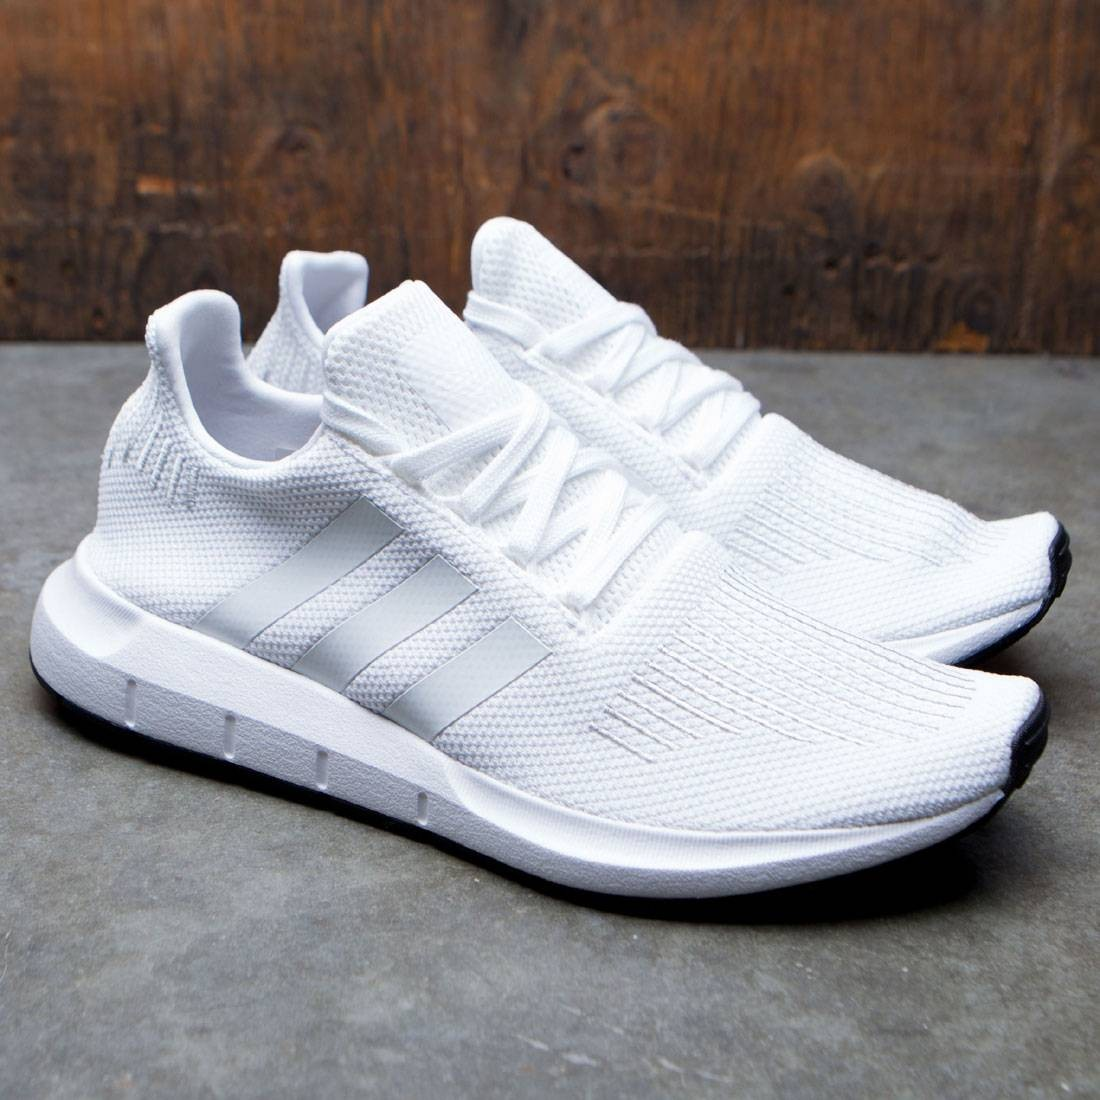 9286c6a1c Buy 2 OFF ANY adidas swift run mens white CASE AND GET 70% OFF!